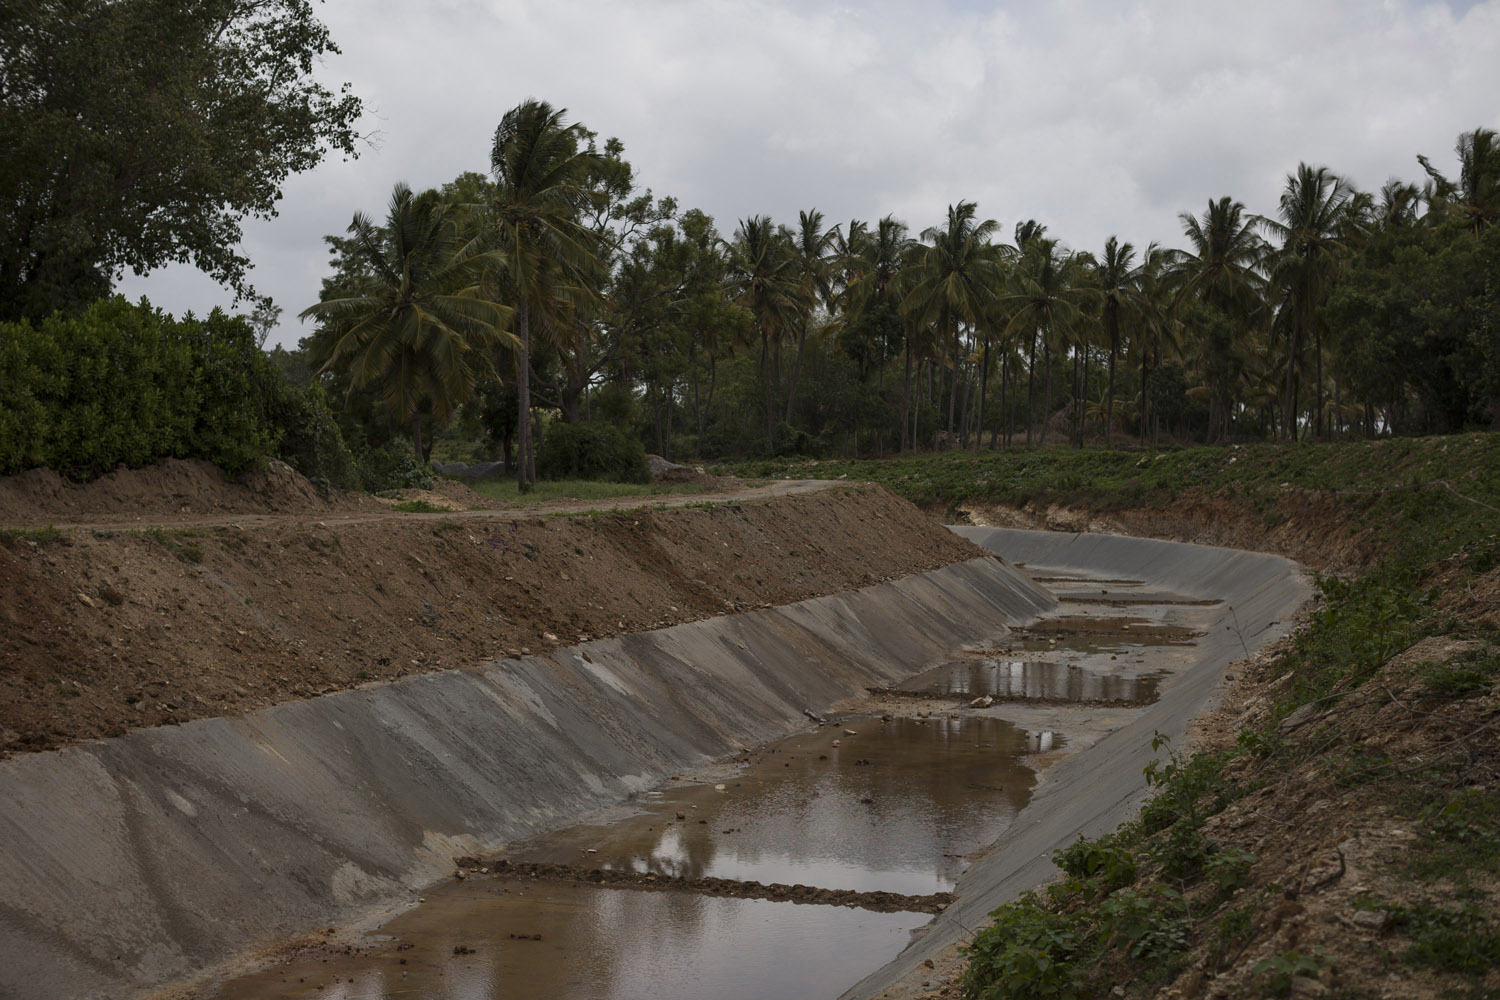 An irrigation channel from the Krishna Sagara Dam runs dry on a hot day in July, the middle of the rain season.